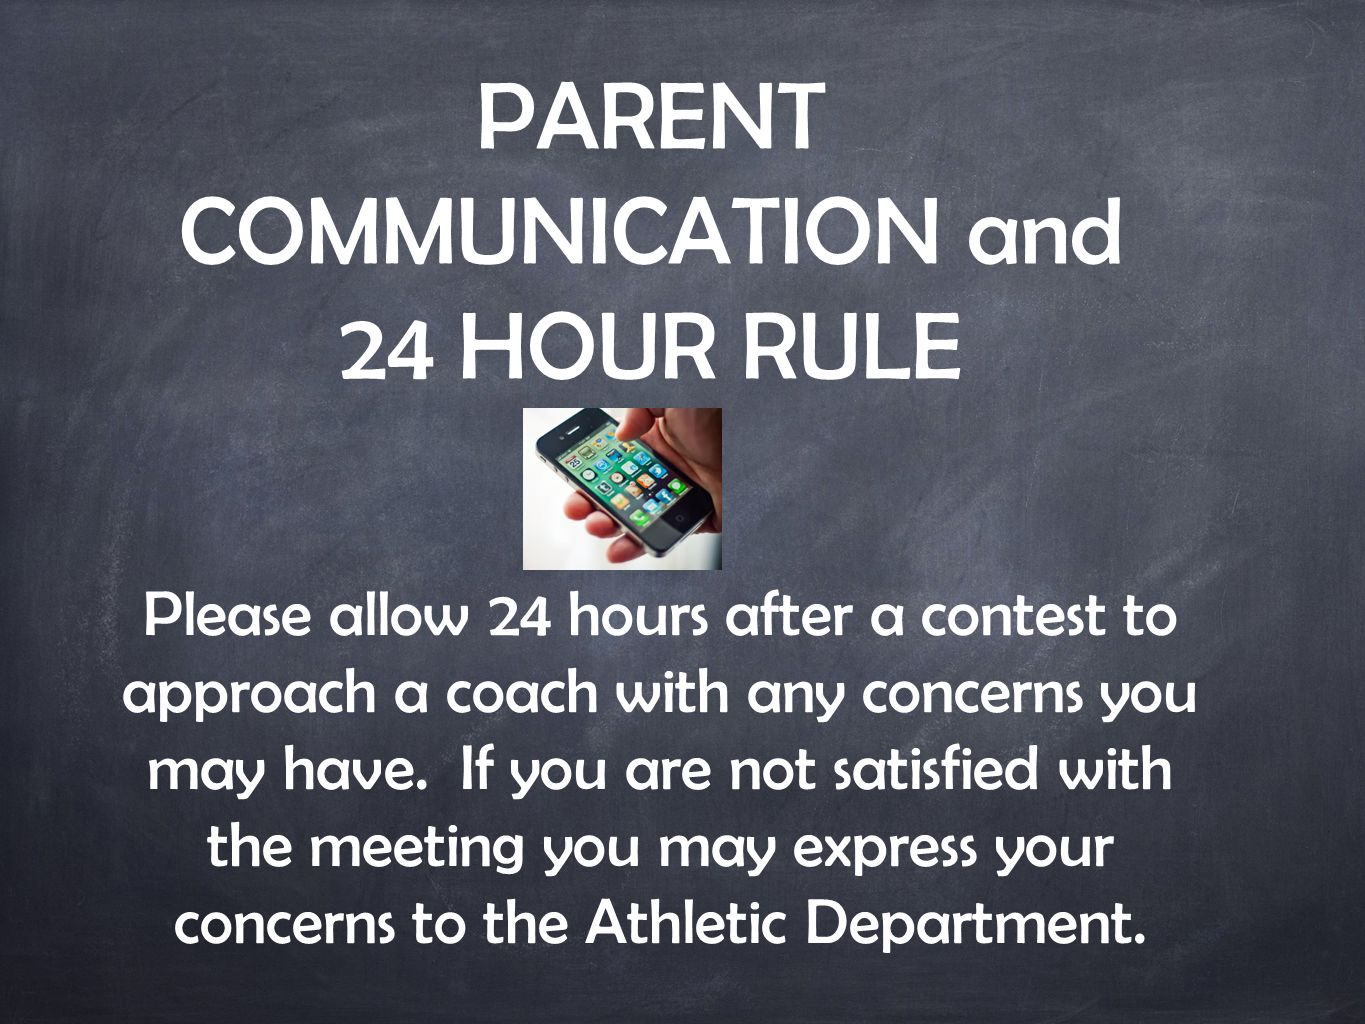 PARENT COMMUNICATION and 24 HOUR RULE Please allow 24 hours after a contest to approach a coach with any concerns you may have.